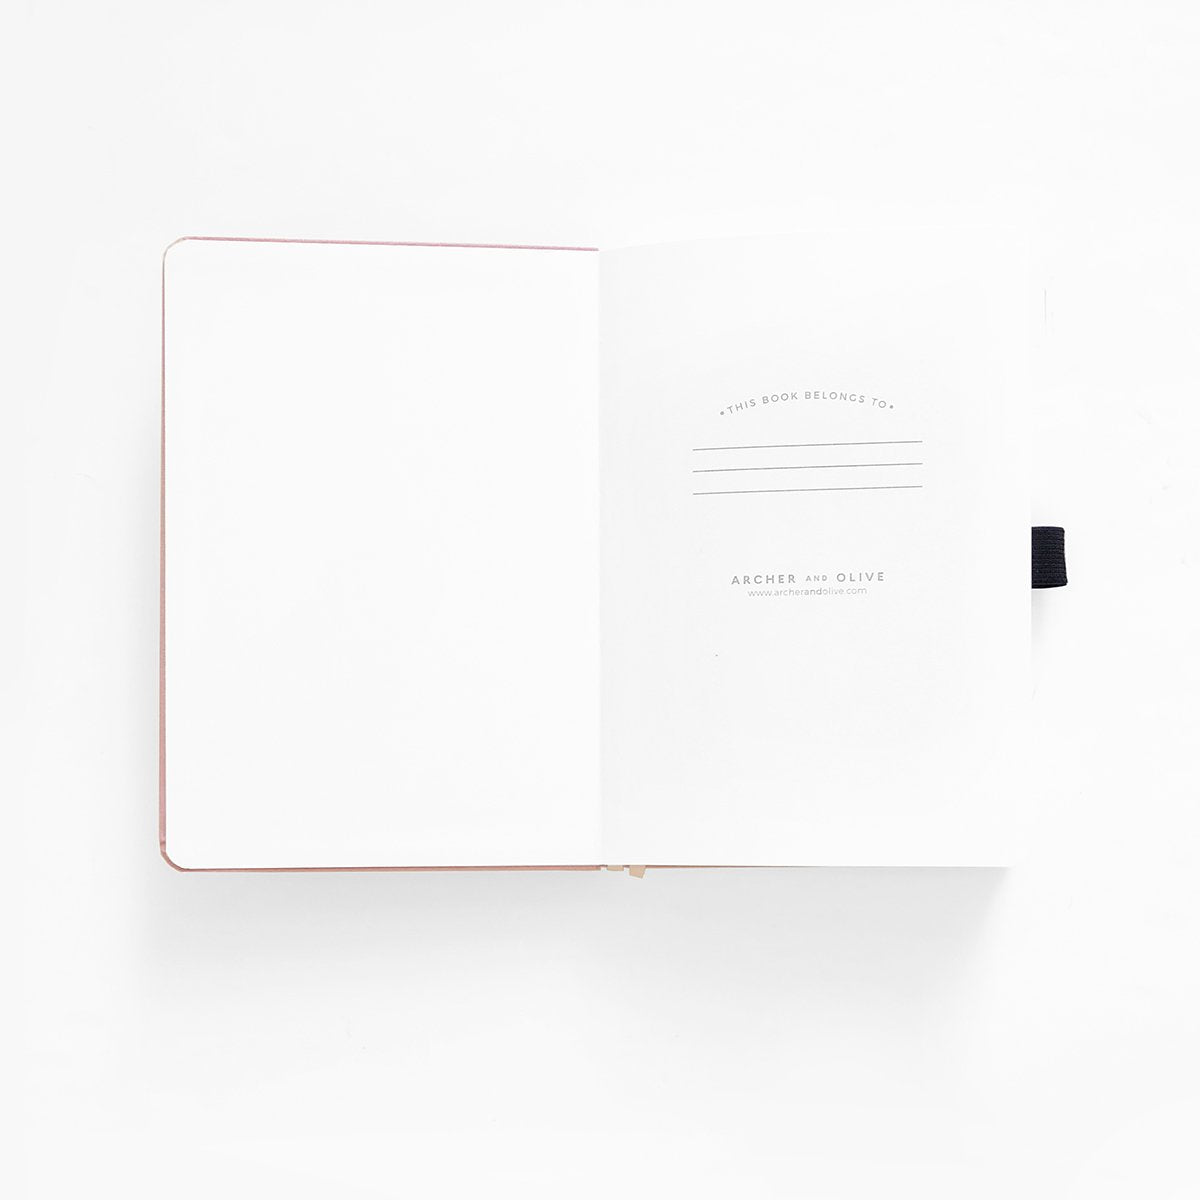 A5 DOT GRID NOTEBOOK WITH 192 PAGES : STARDUST